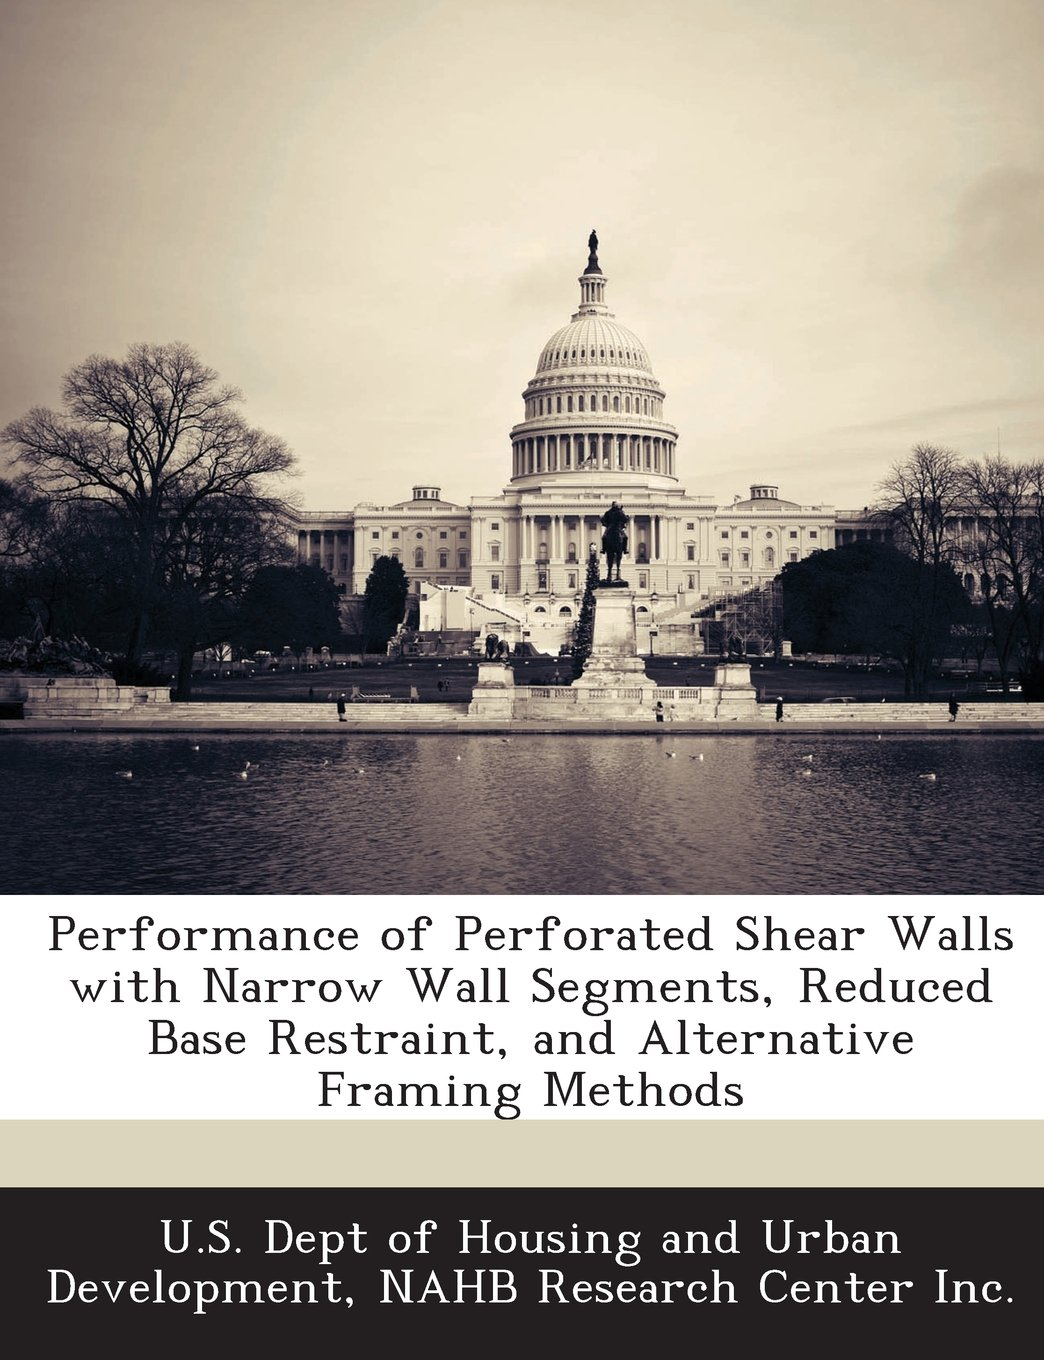 Download Performance of Perforated Shear Walls with Narrow Wall Segments, Reduced Base Restraint, and Alternative Framing Methods pdf